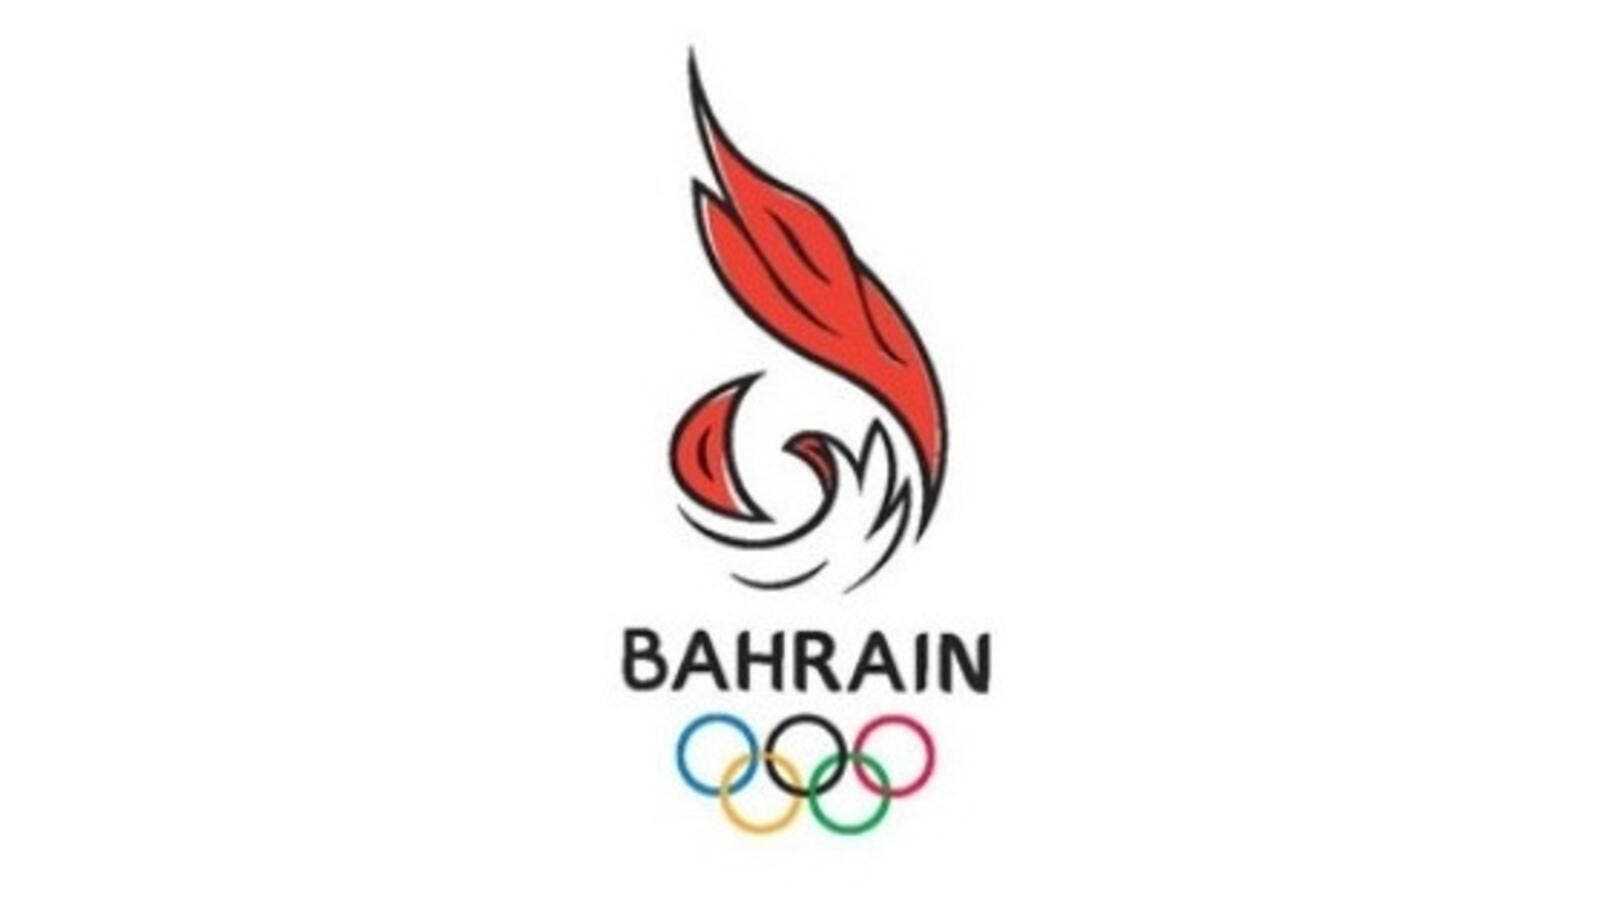 The Bahrain Olympic Committee logo